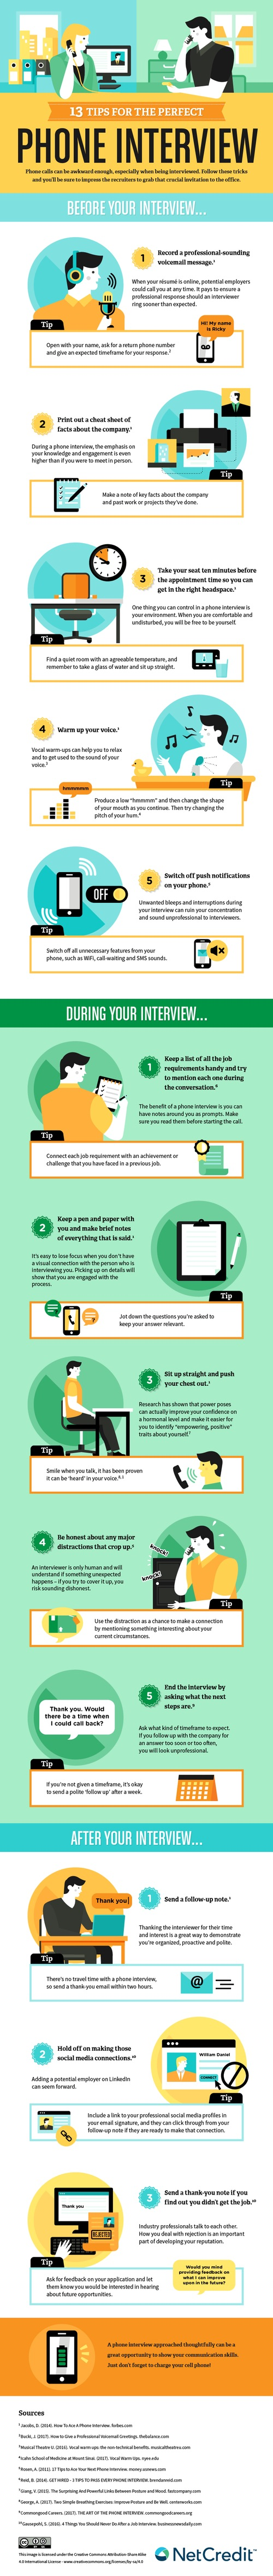 How to master a phone interview